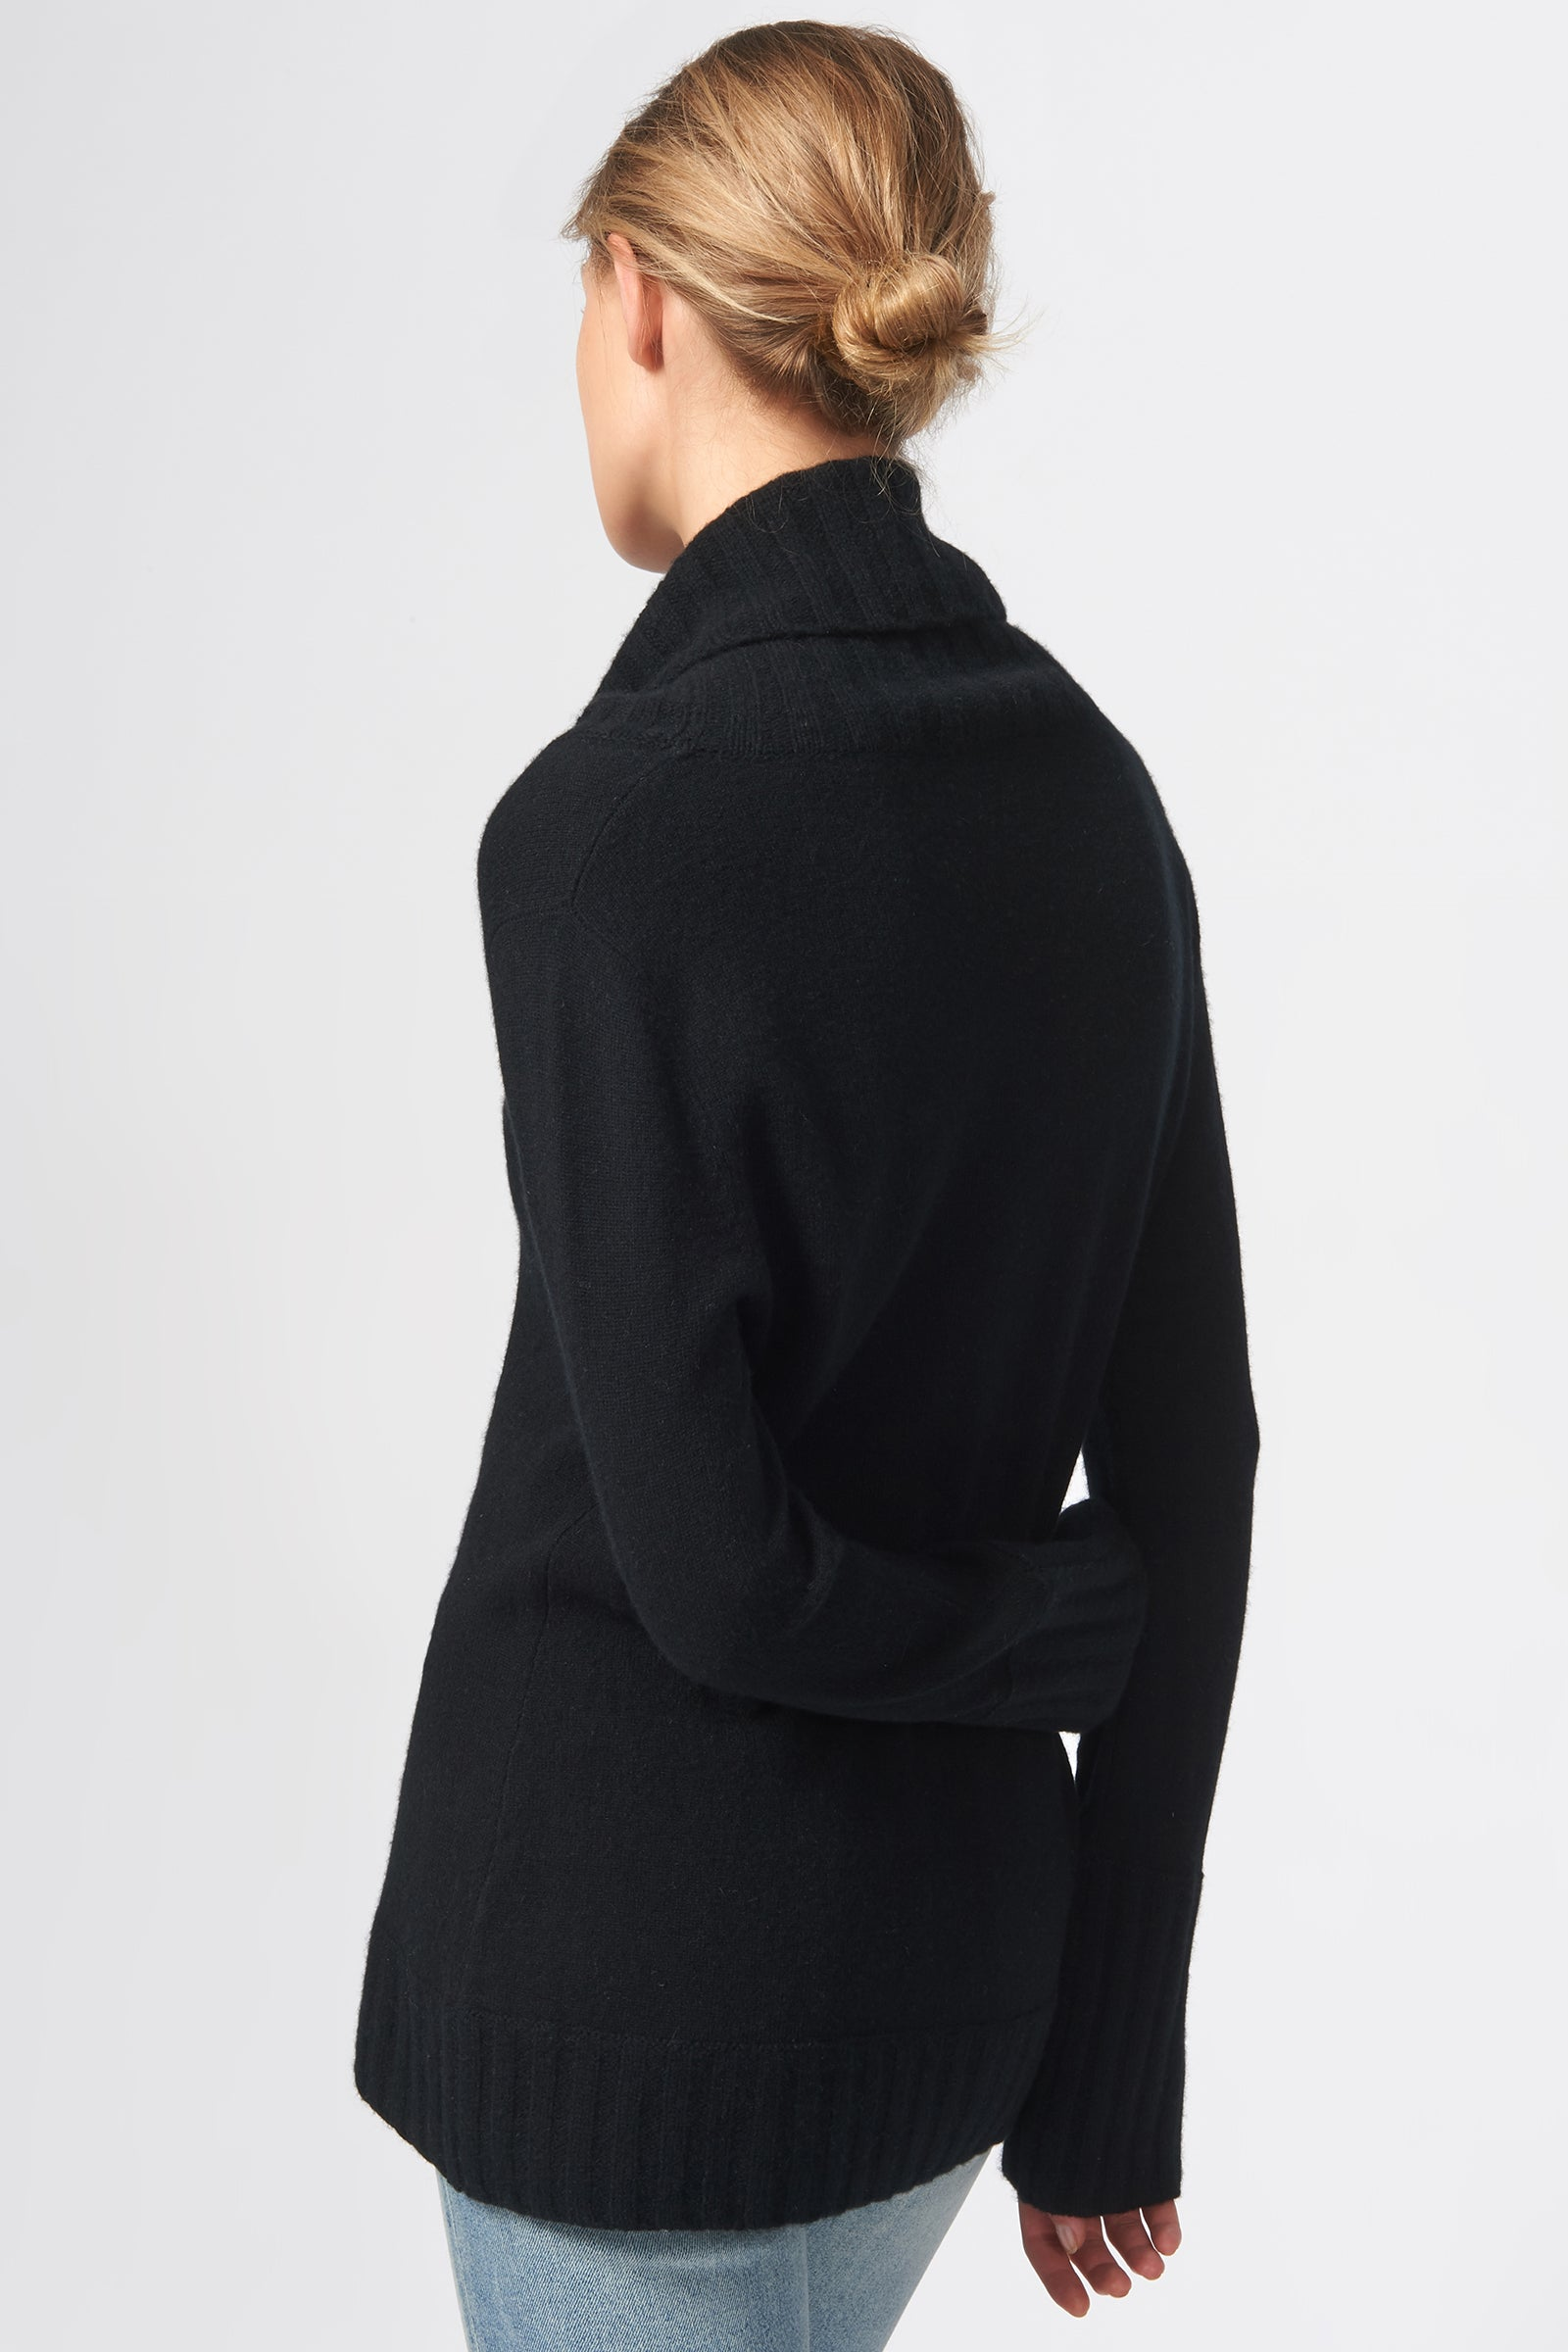 Kal Rieman Cashmere Cowel T-Neck in Black on Model Front View